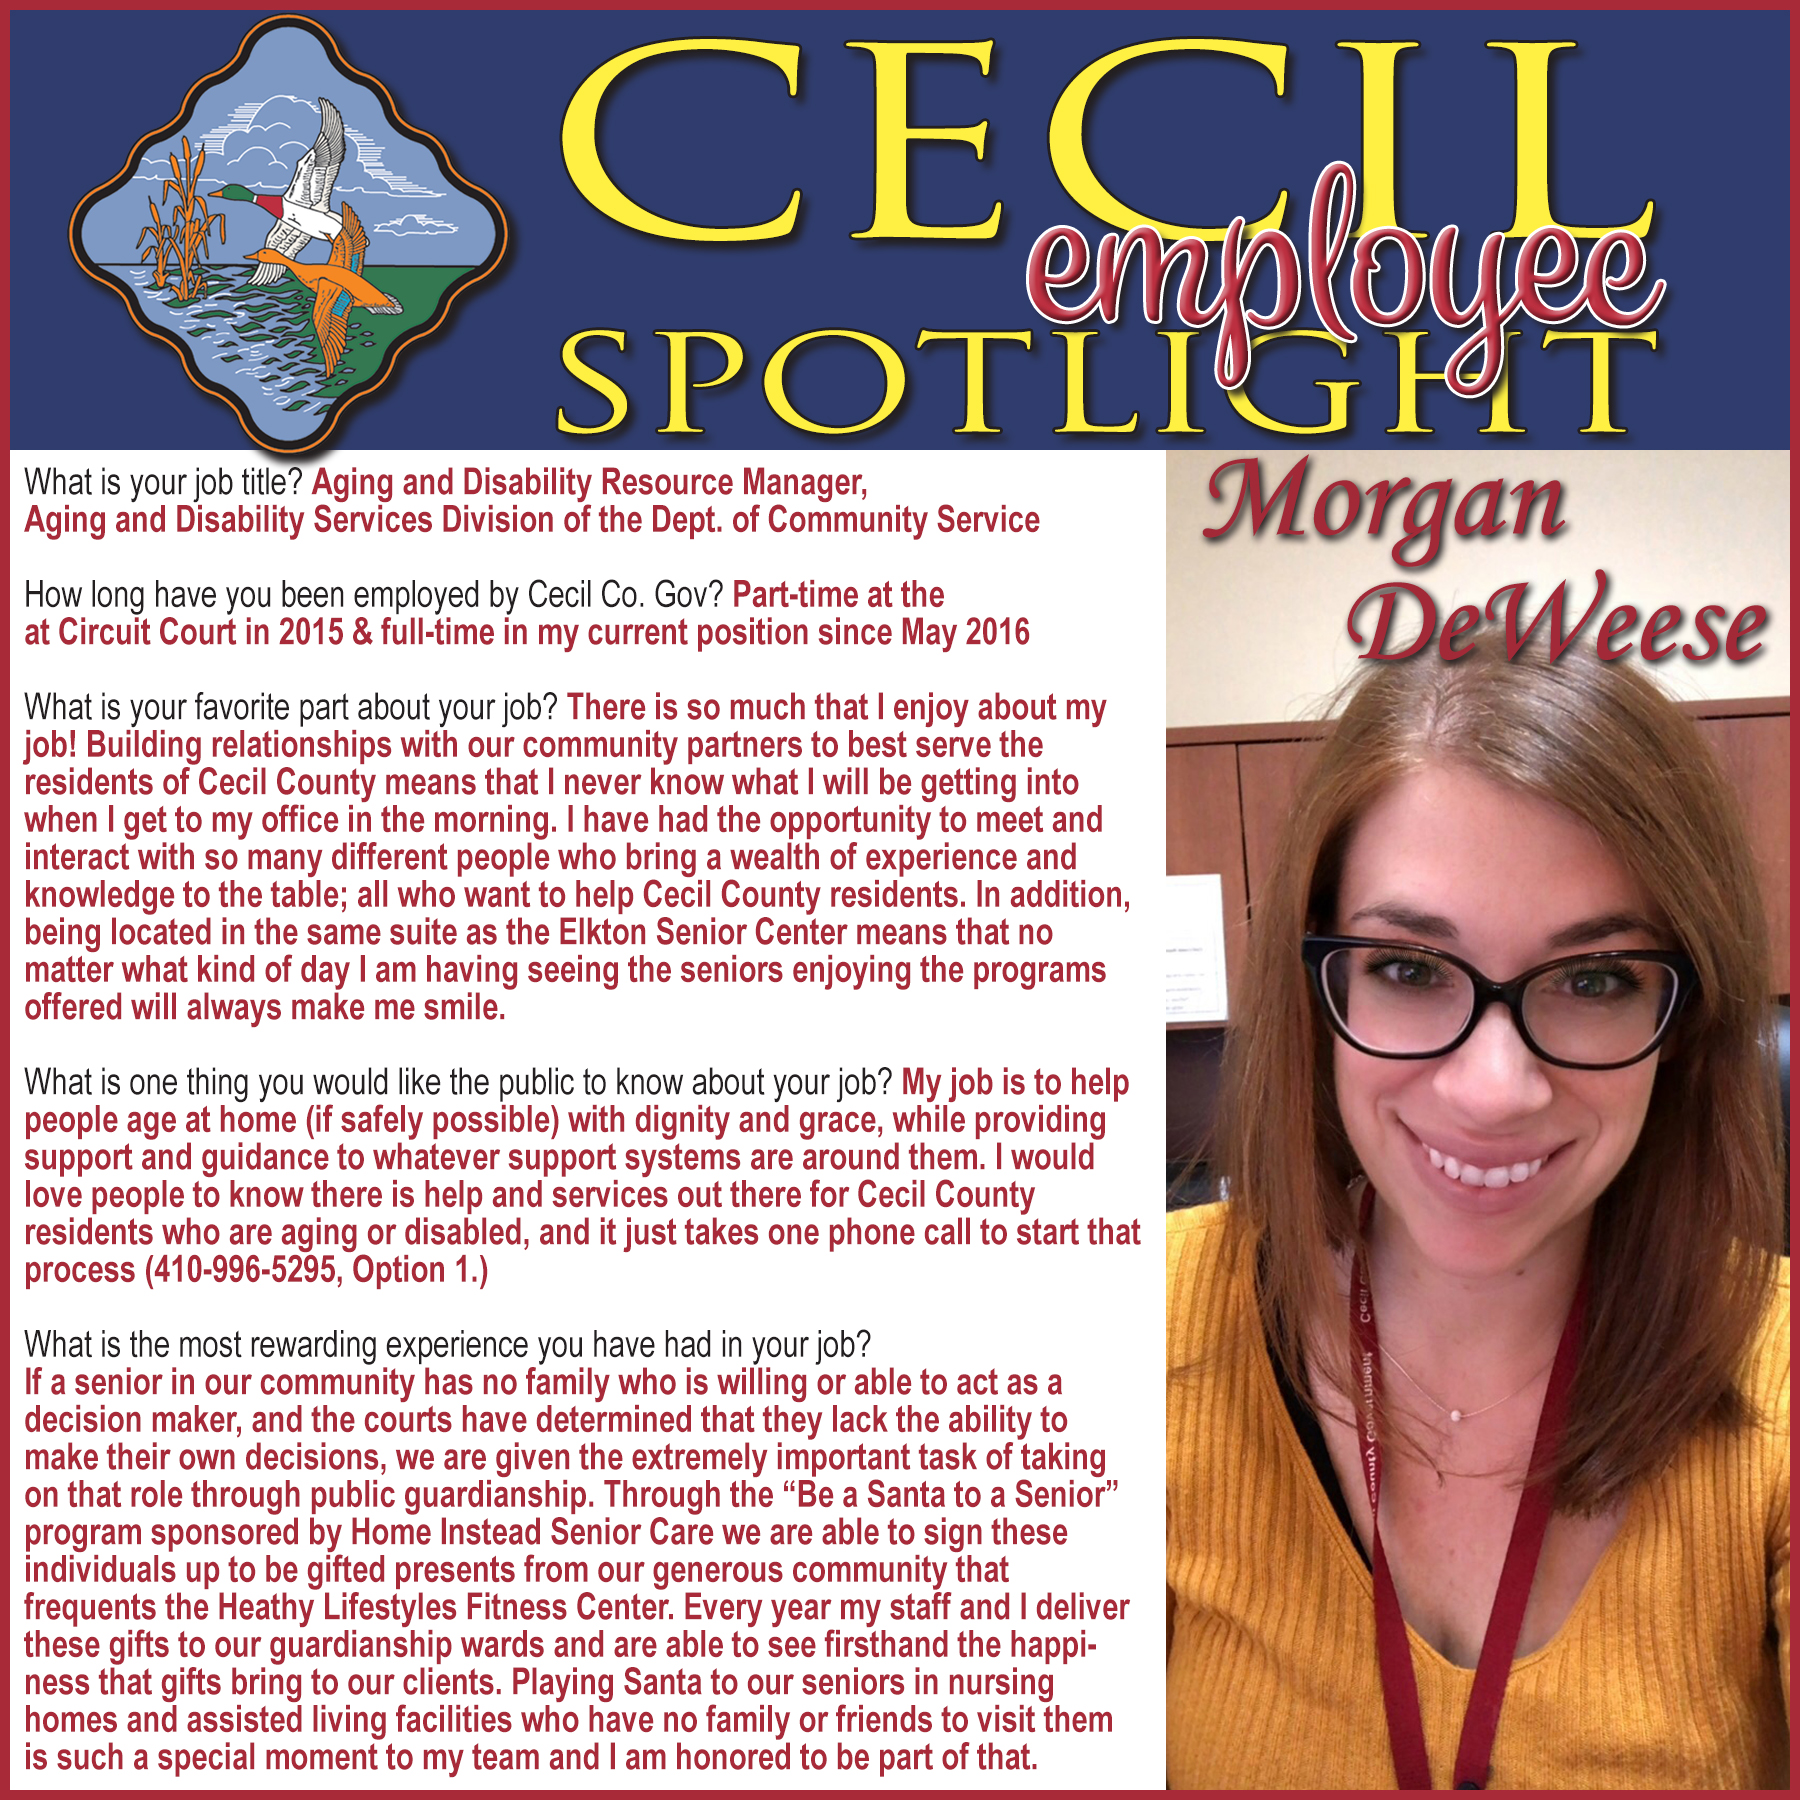 Cecil Employee Spotlight: Aging and Disability Resource Manager Morgan DeWeese